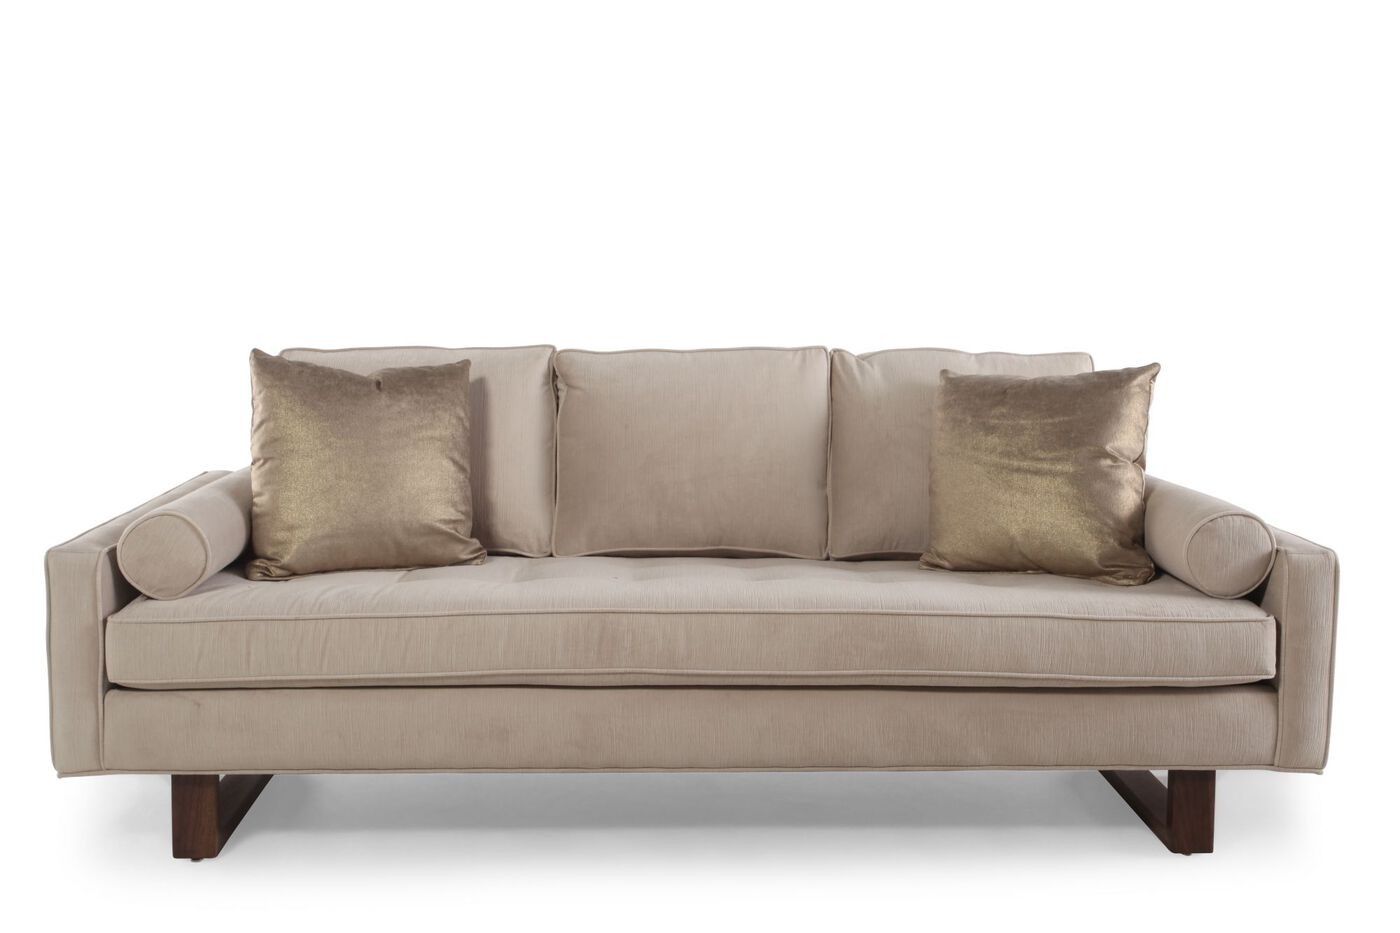 Contemporary 89 Sofa In Cream Mathis Brothers Furniture